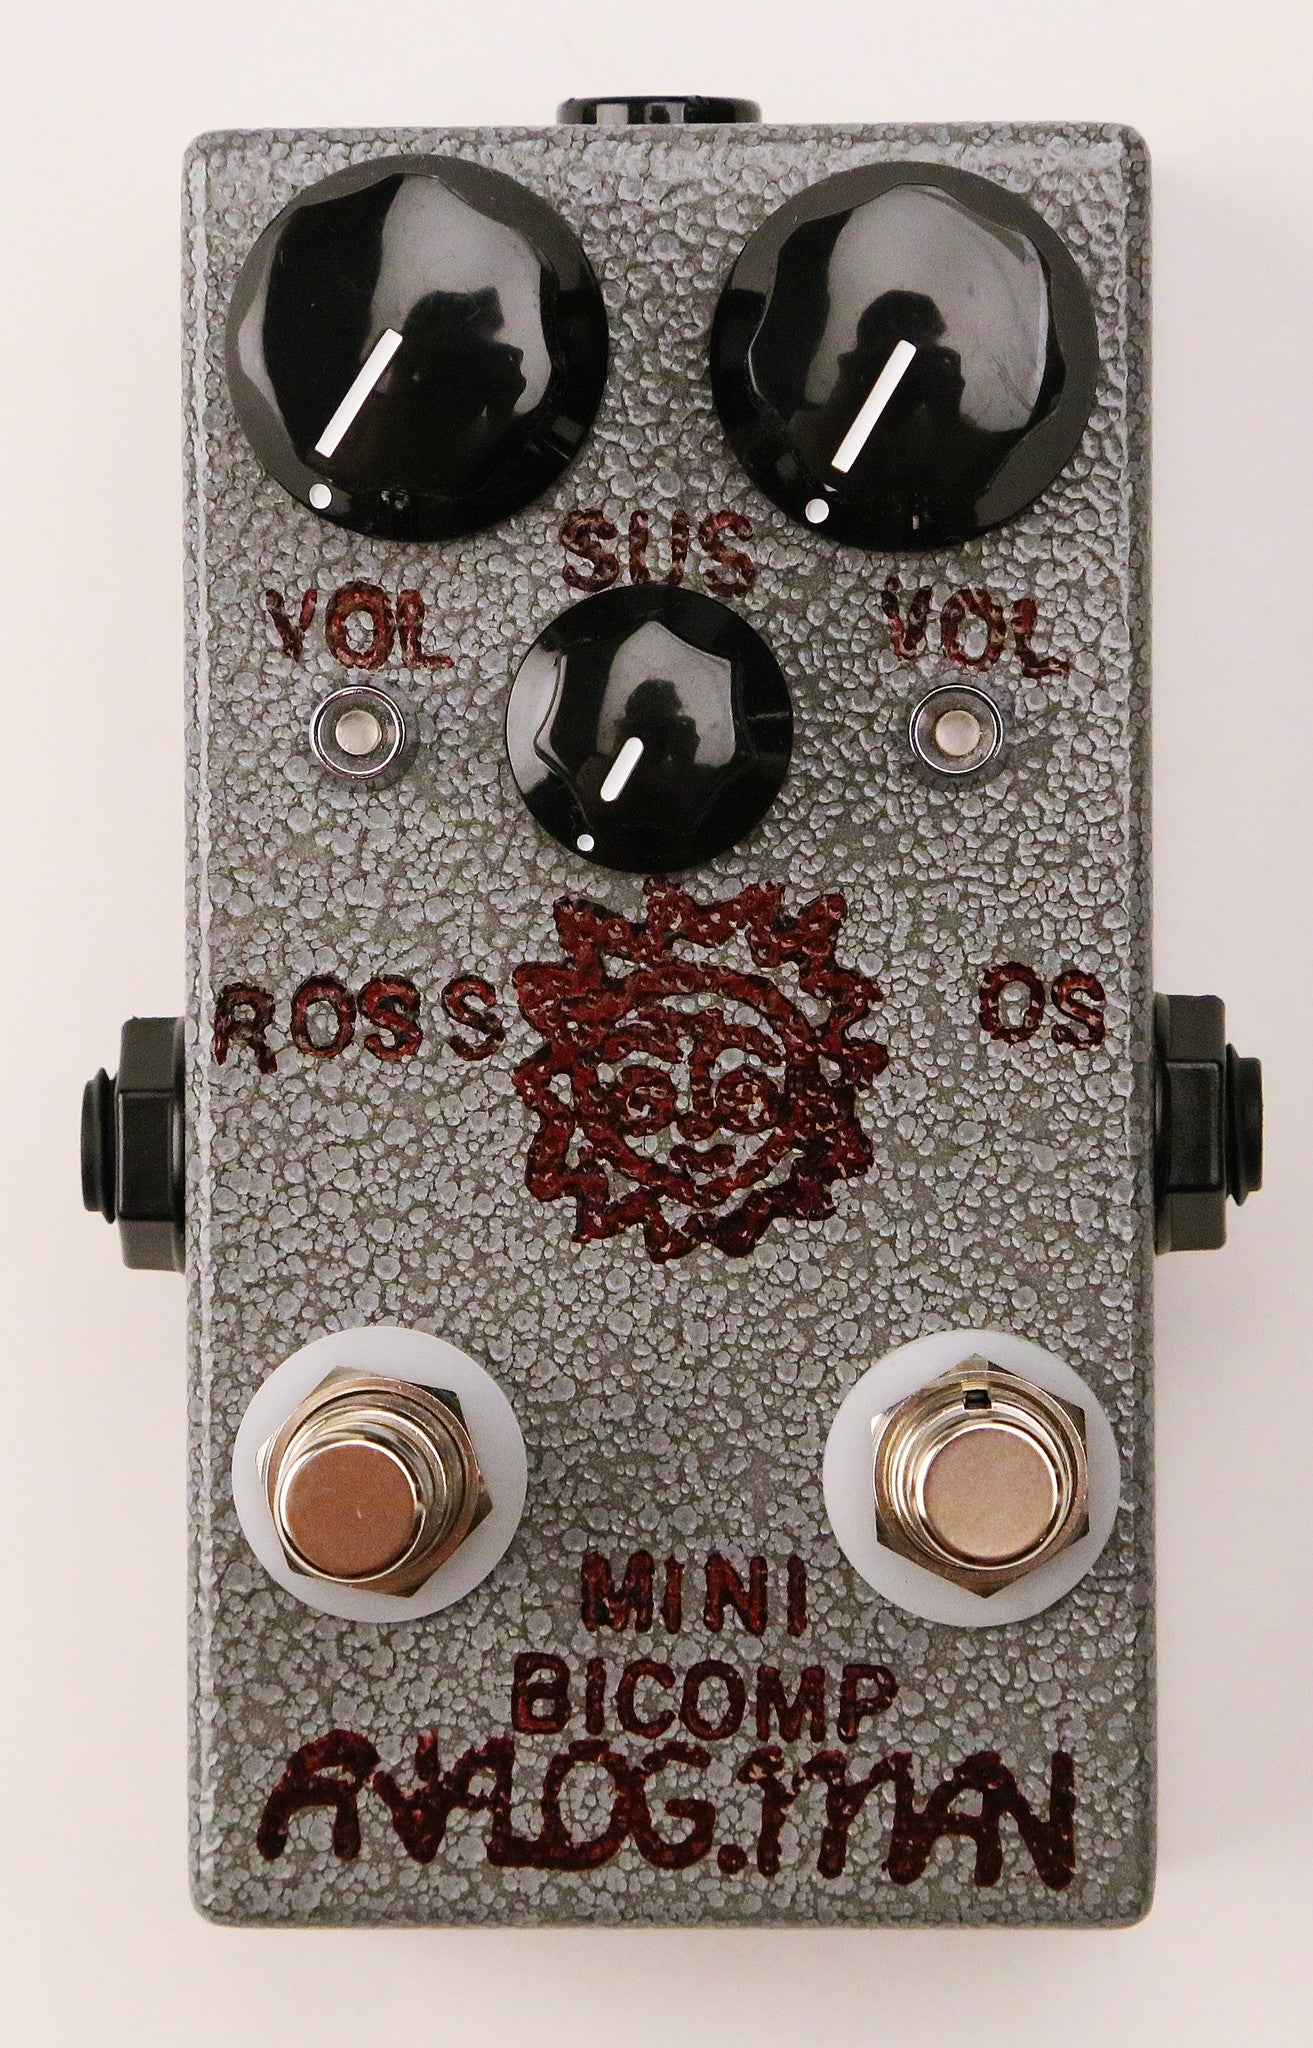 Analogman Mini Bi-CompRossor Compressor